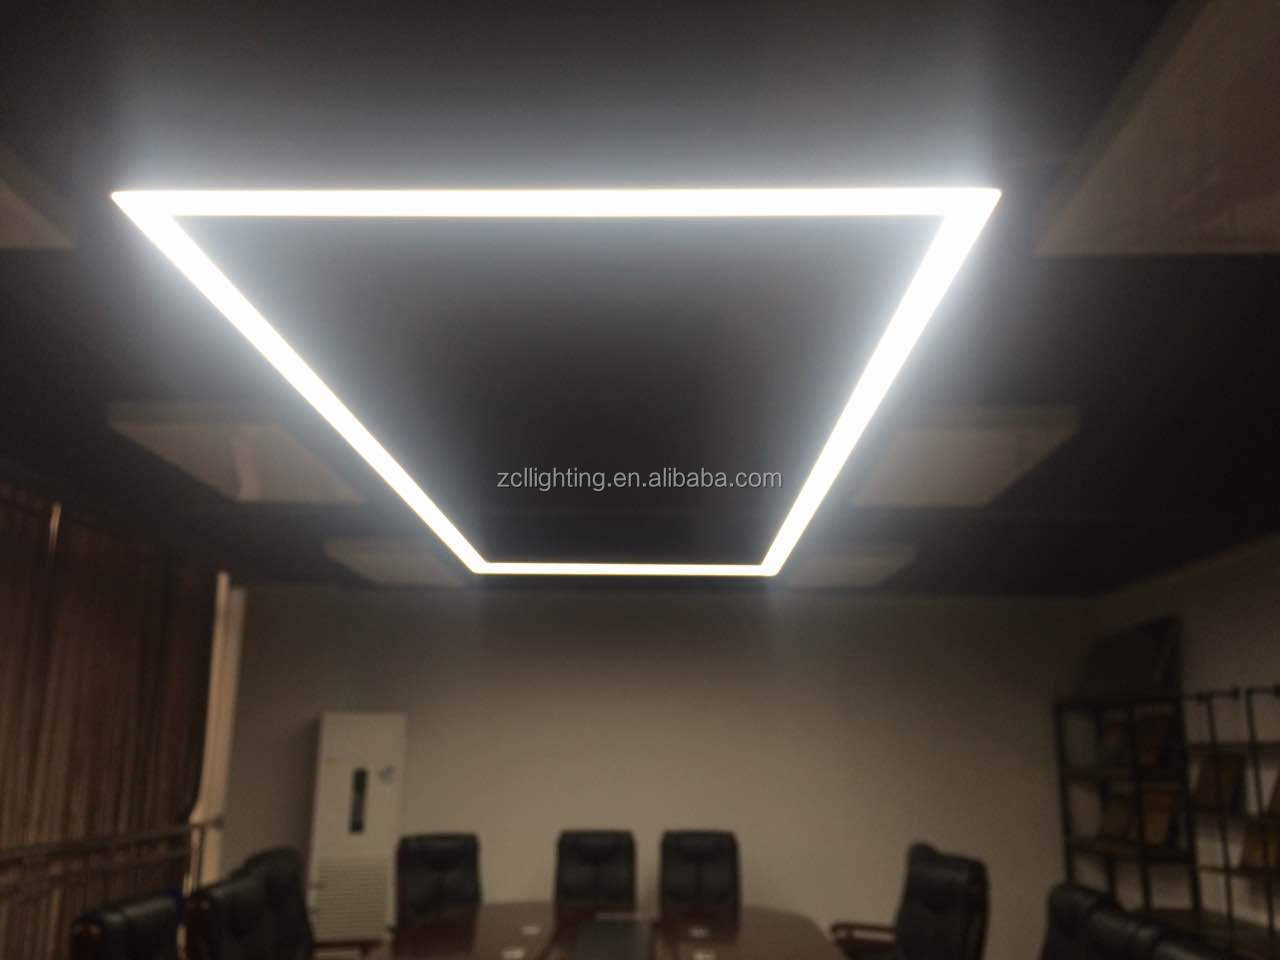 Wholesale China Factory Ceiling Profile Recessed Suspended Updown LED Linear Luminaire Light